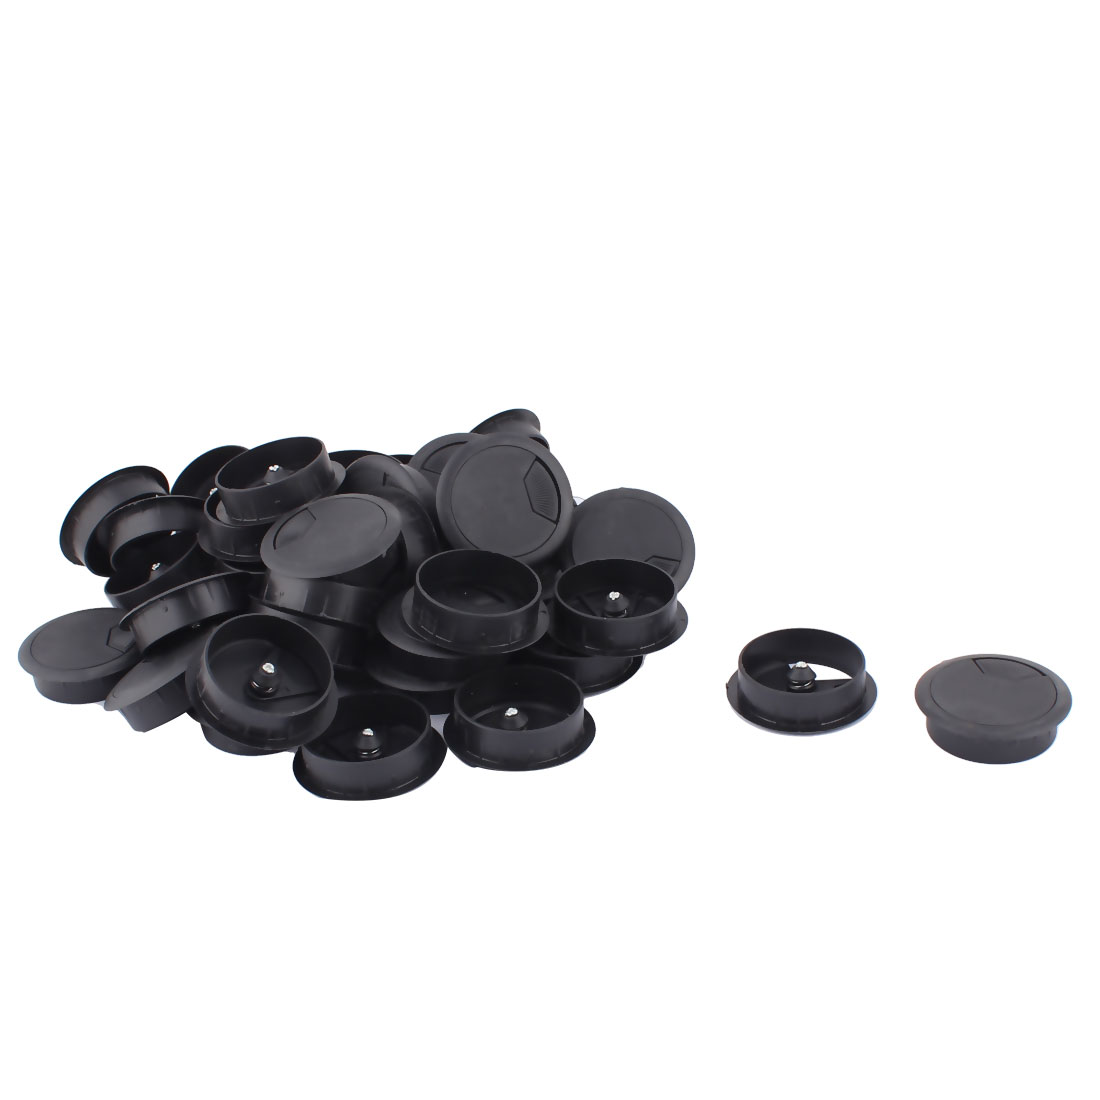 Computer Desk Table Plastic Grommet Wire Cord Cable Hole Cover Black 49mm Dia 40pcs